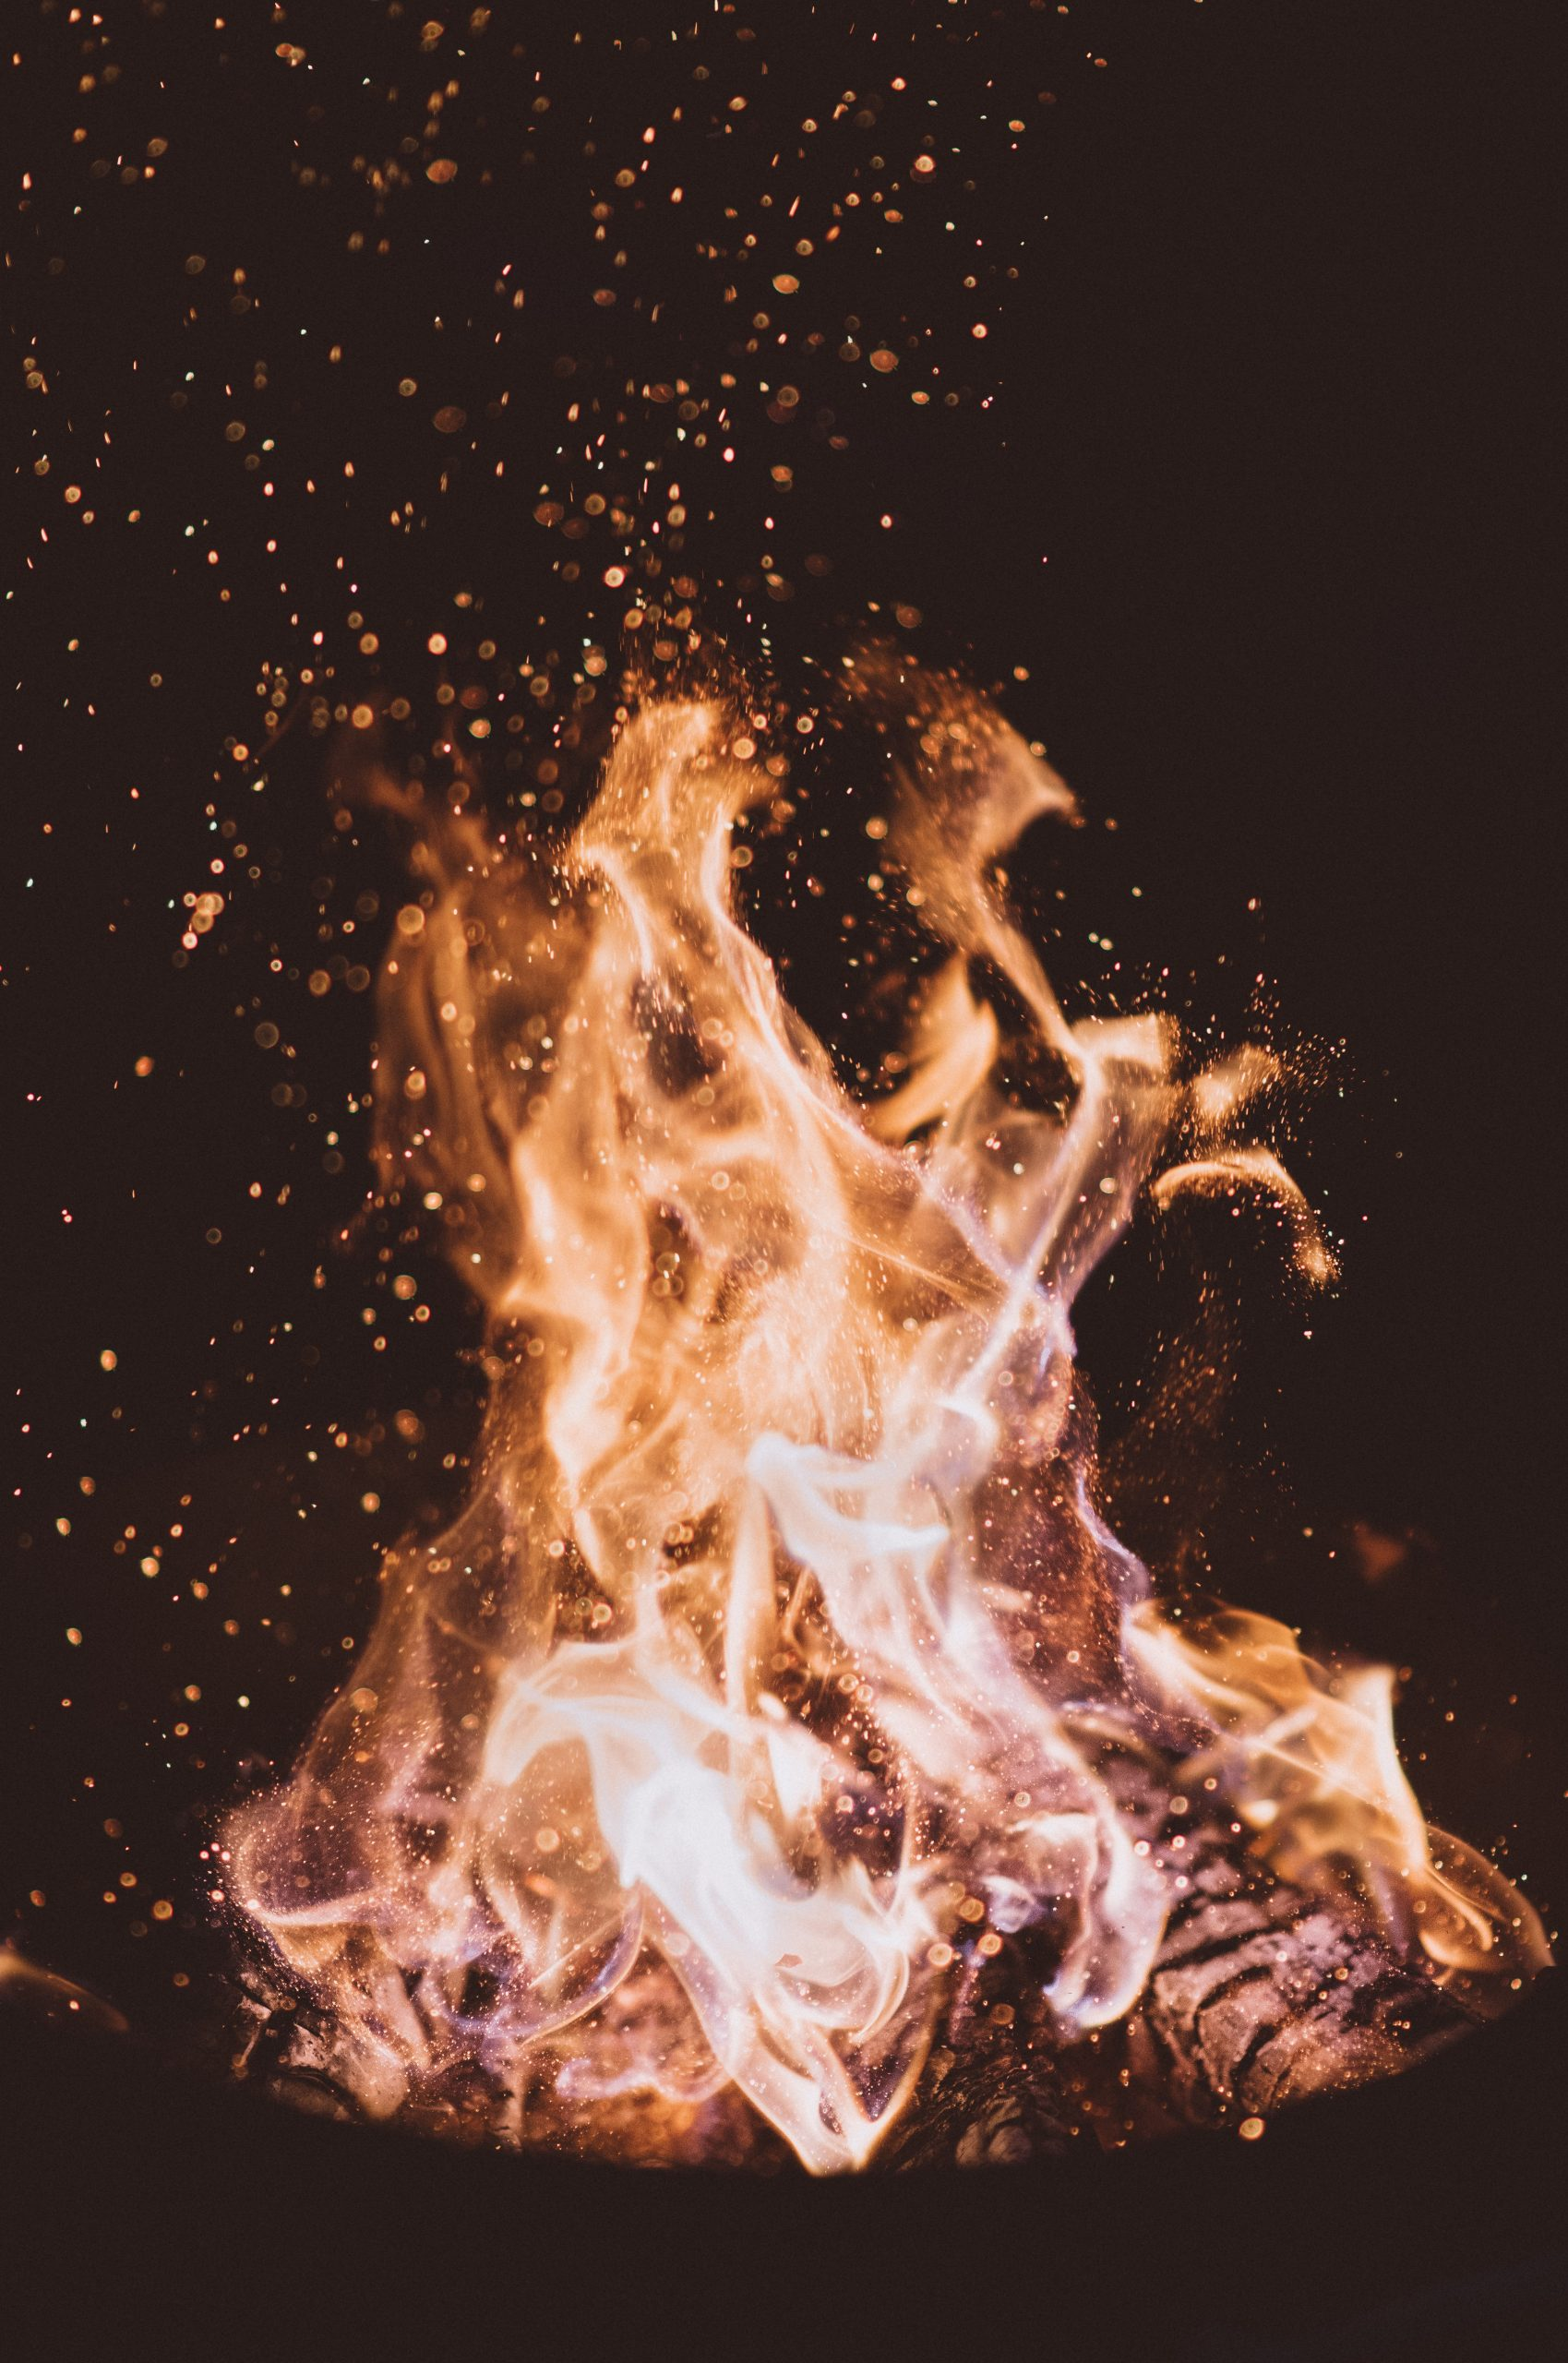 May 2020: Spirit of Fire and Light